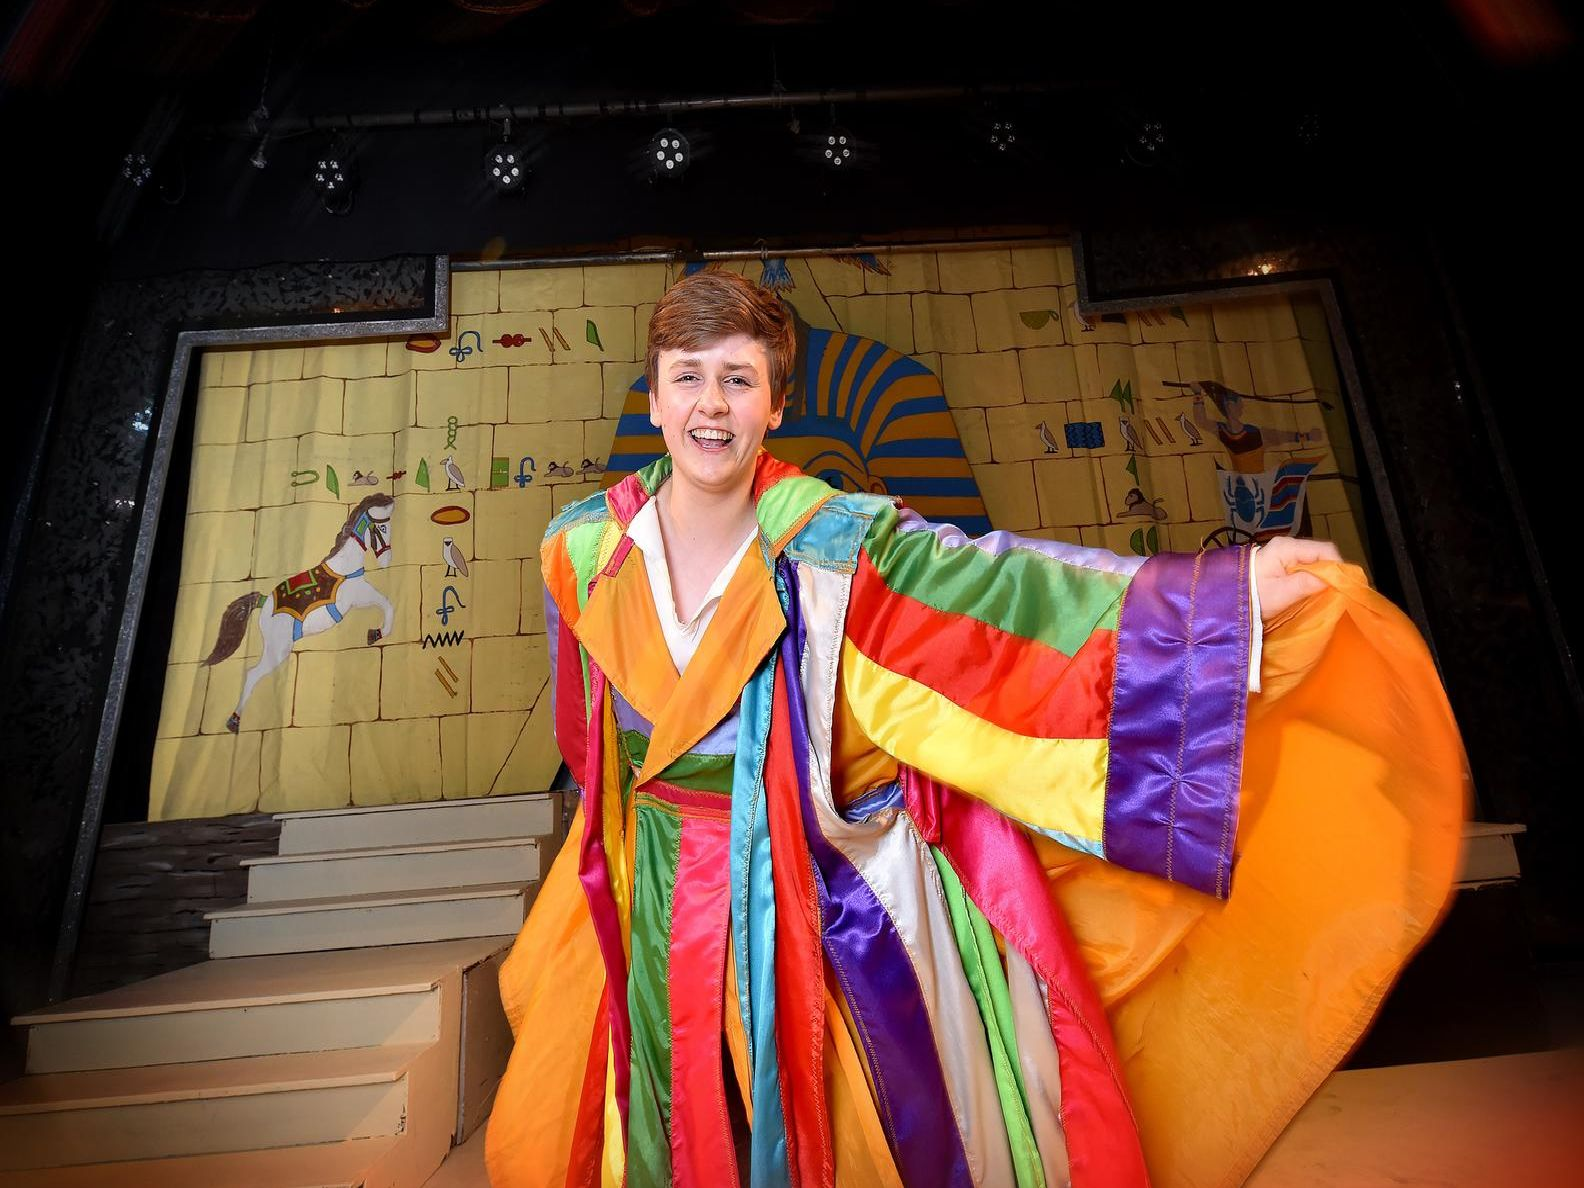 Kian Moore plays the title role in the YMCA production of Joseph and his Amazing Technicolour Dreamcoat